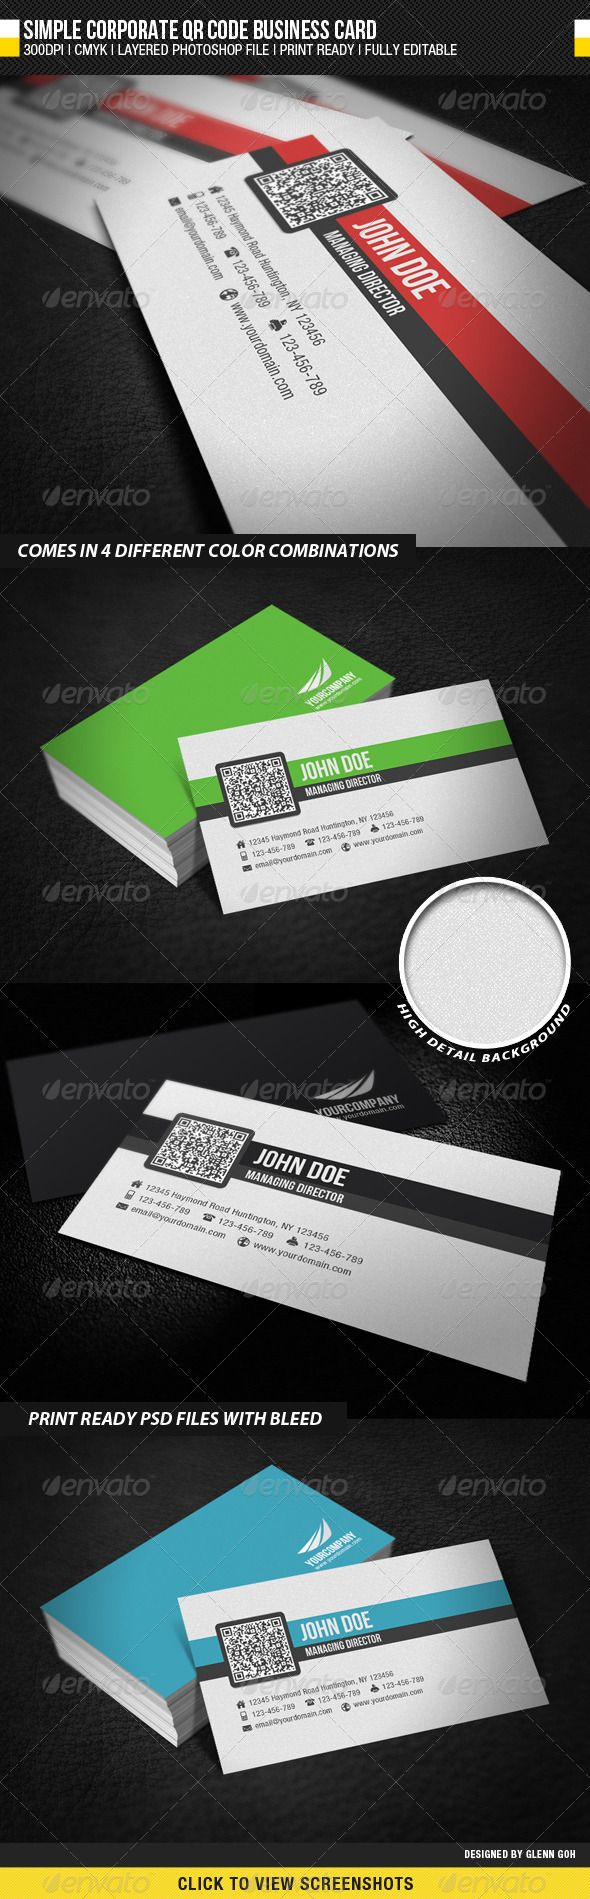 Simple Corporate QR Code Business Card | Qr codes, Business cards ...